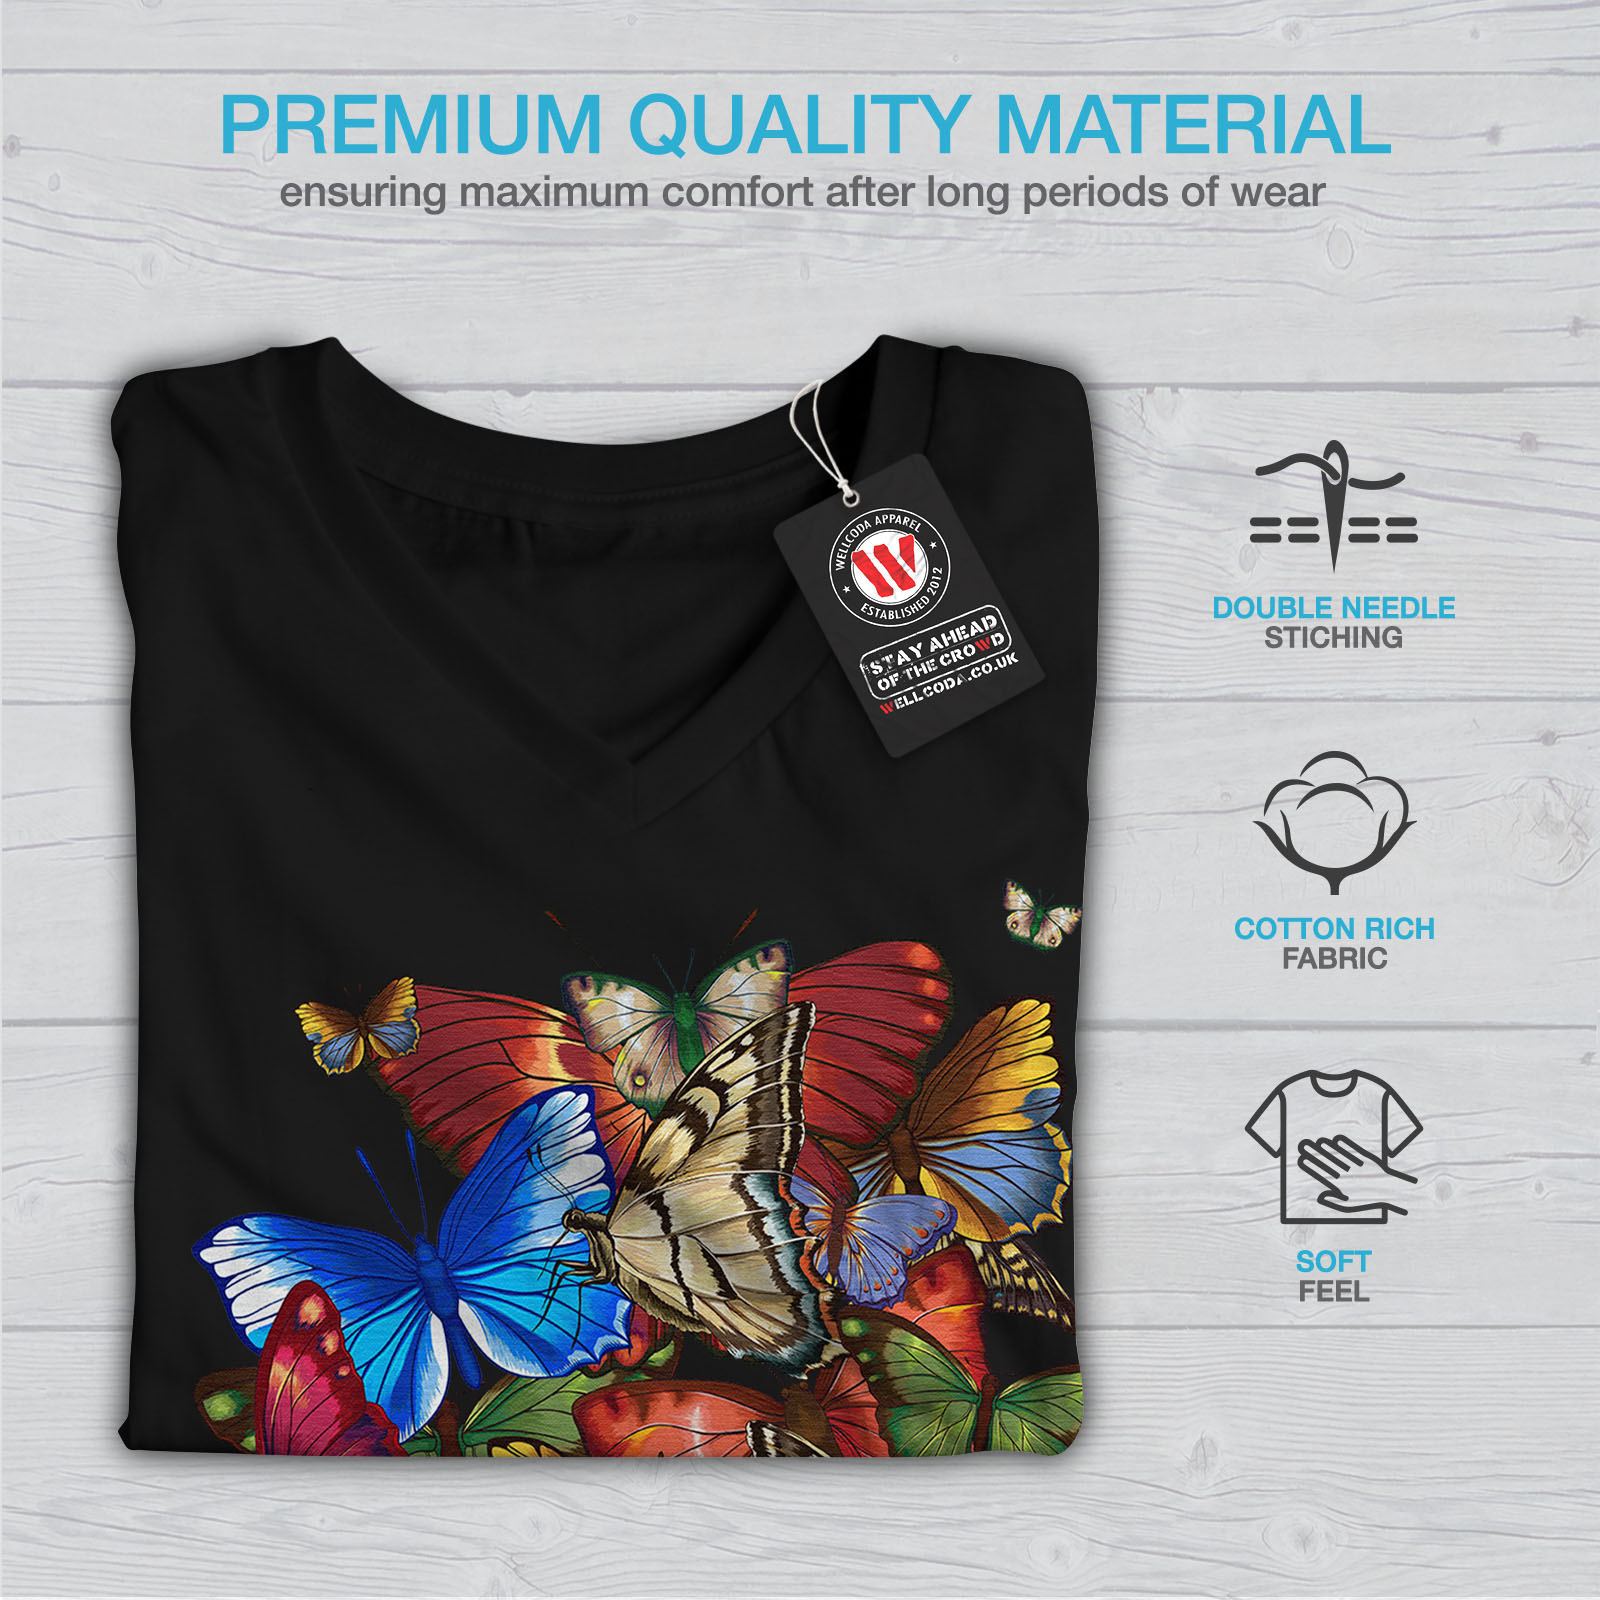 Wellcoda-Colorful-Butterfly-Womens-V-Neck-T-shirt-Freedom-Graphic-Design-Tee thumbnail 5